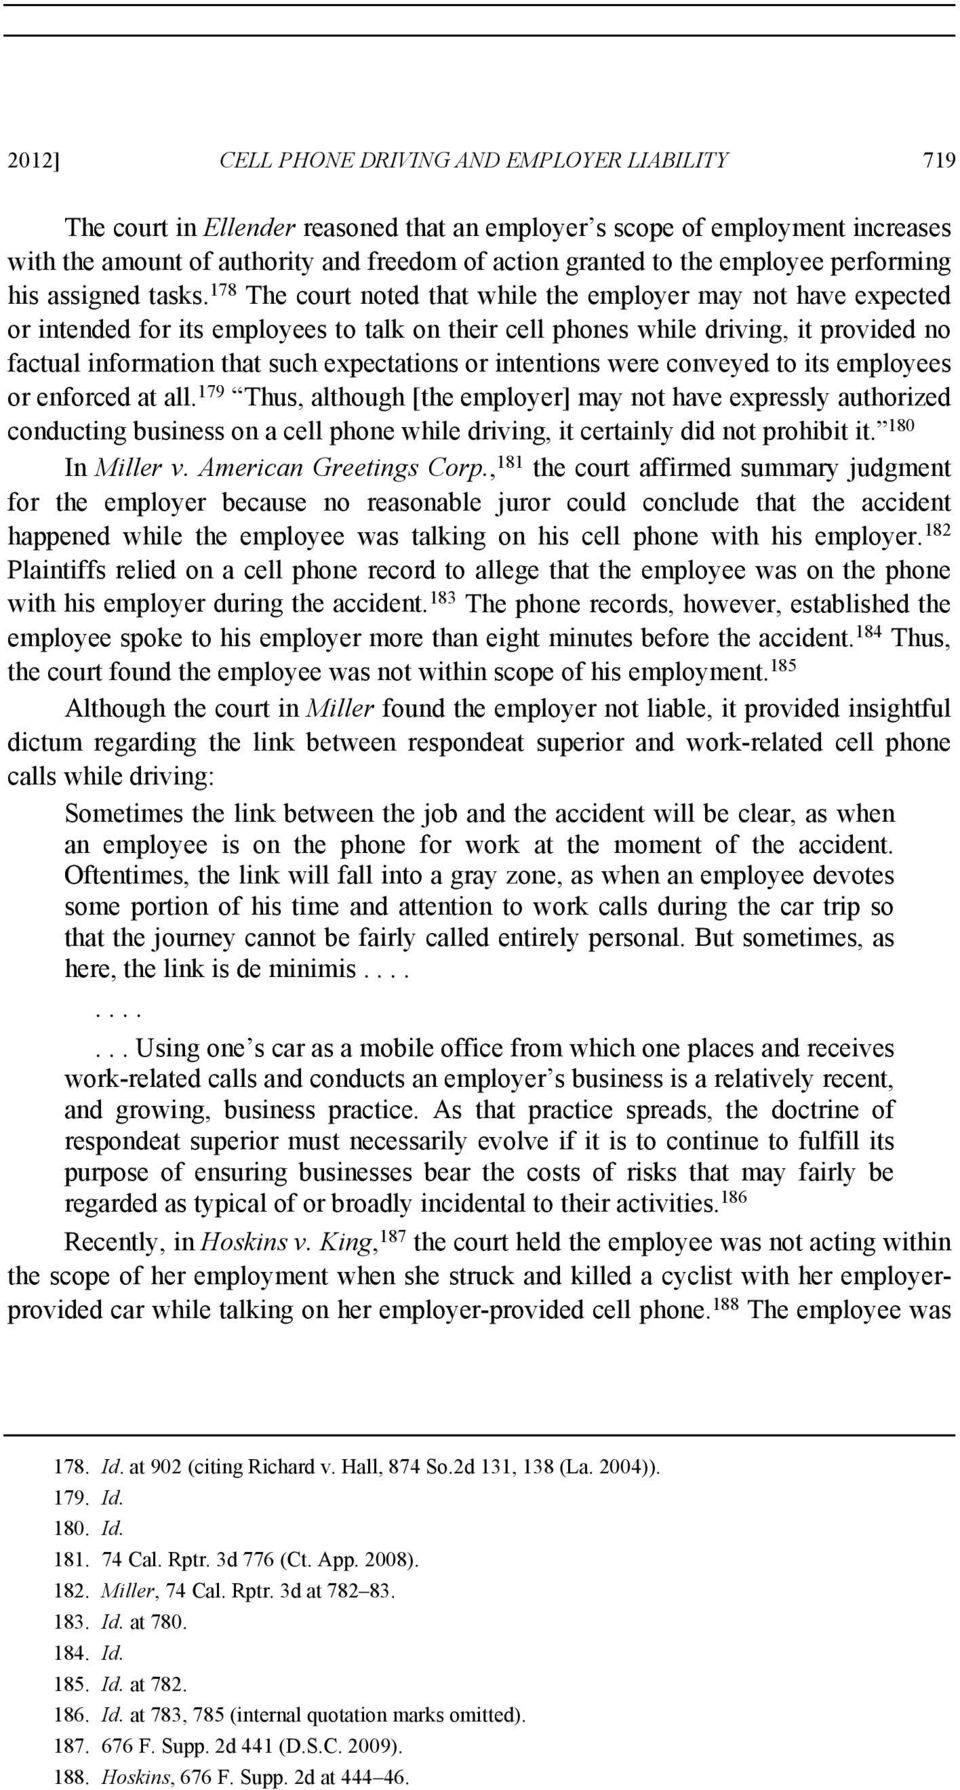 178 The court noted that while the employer may not have expected or intended for its employees to talk on their cell phones while driving, it provided no factual information that such expectations